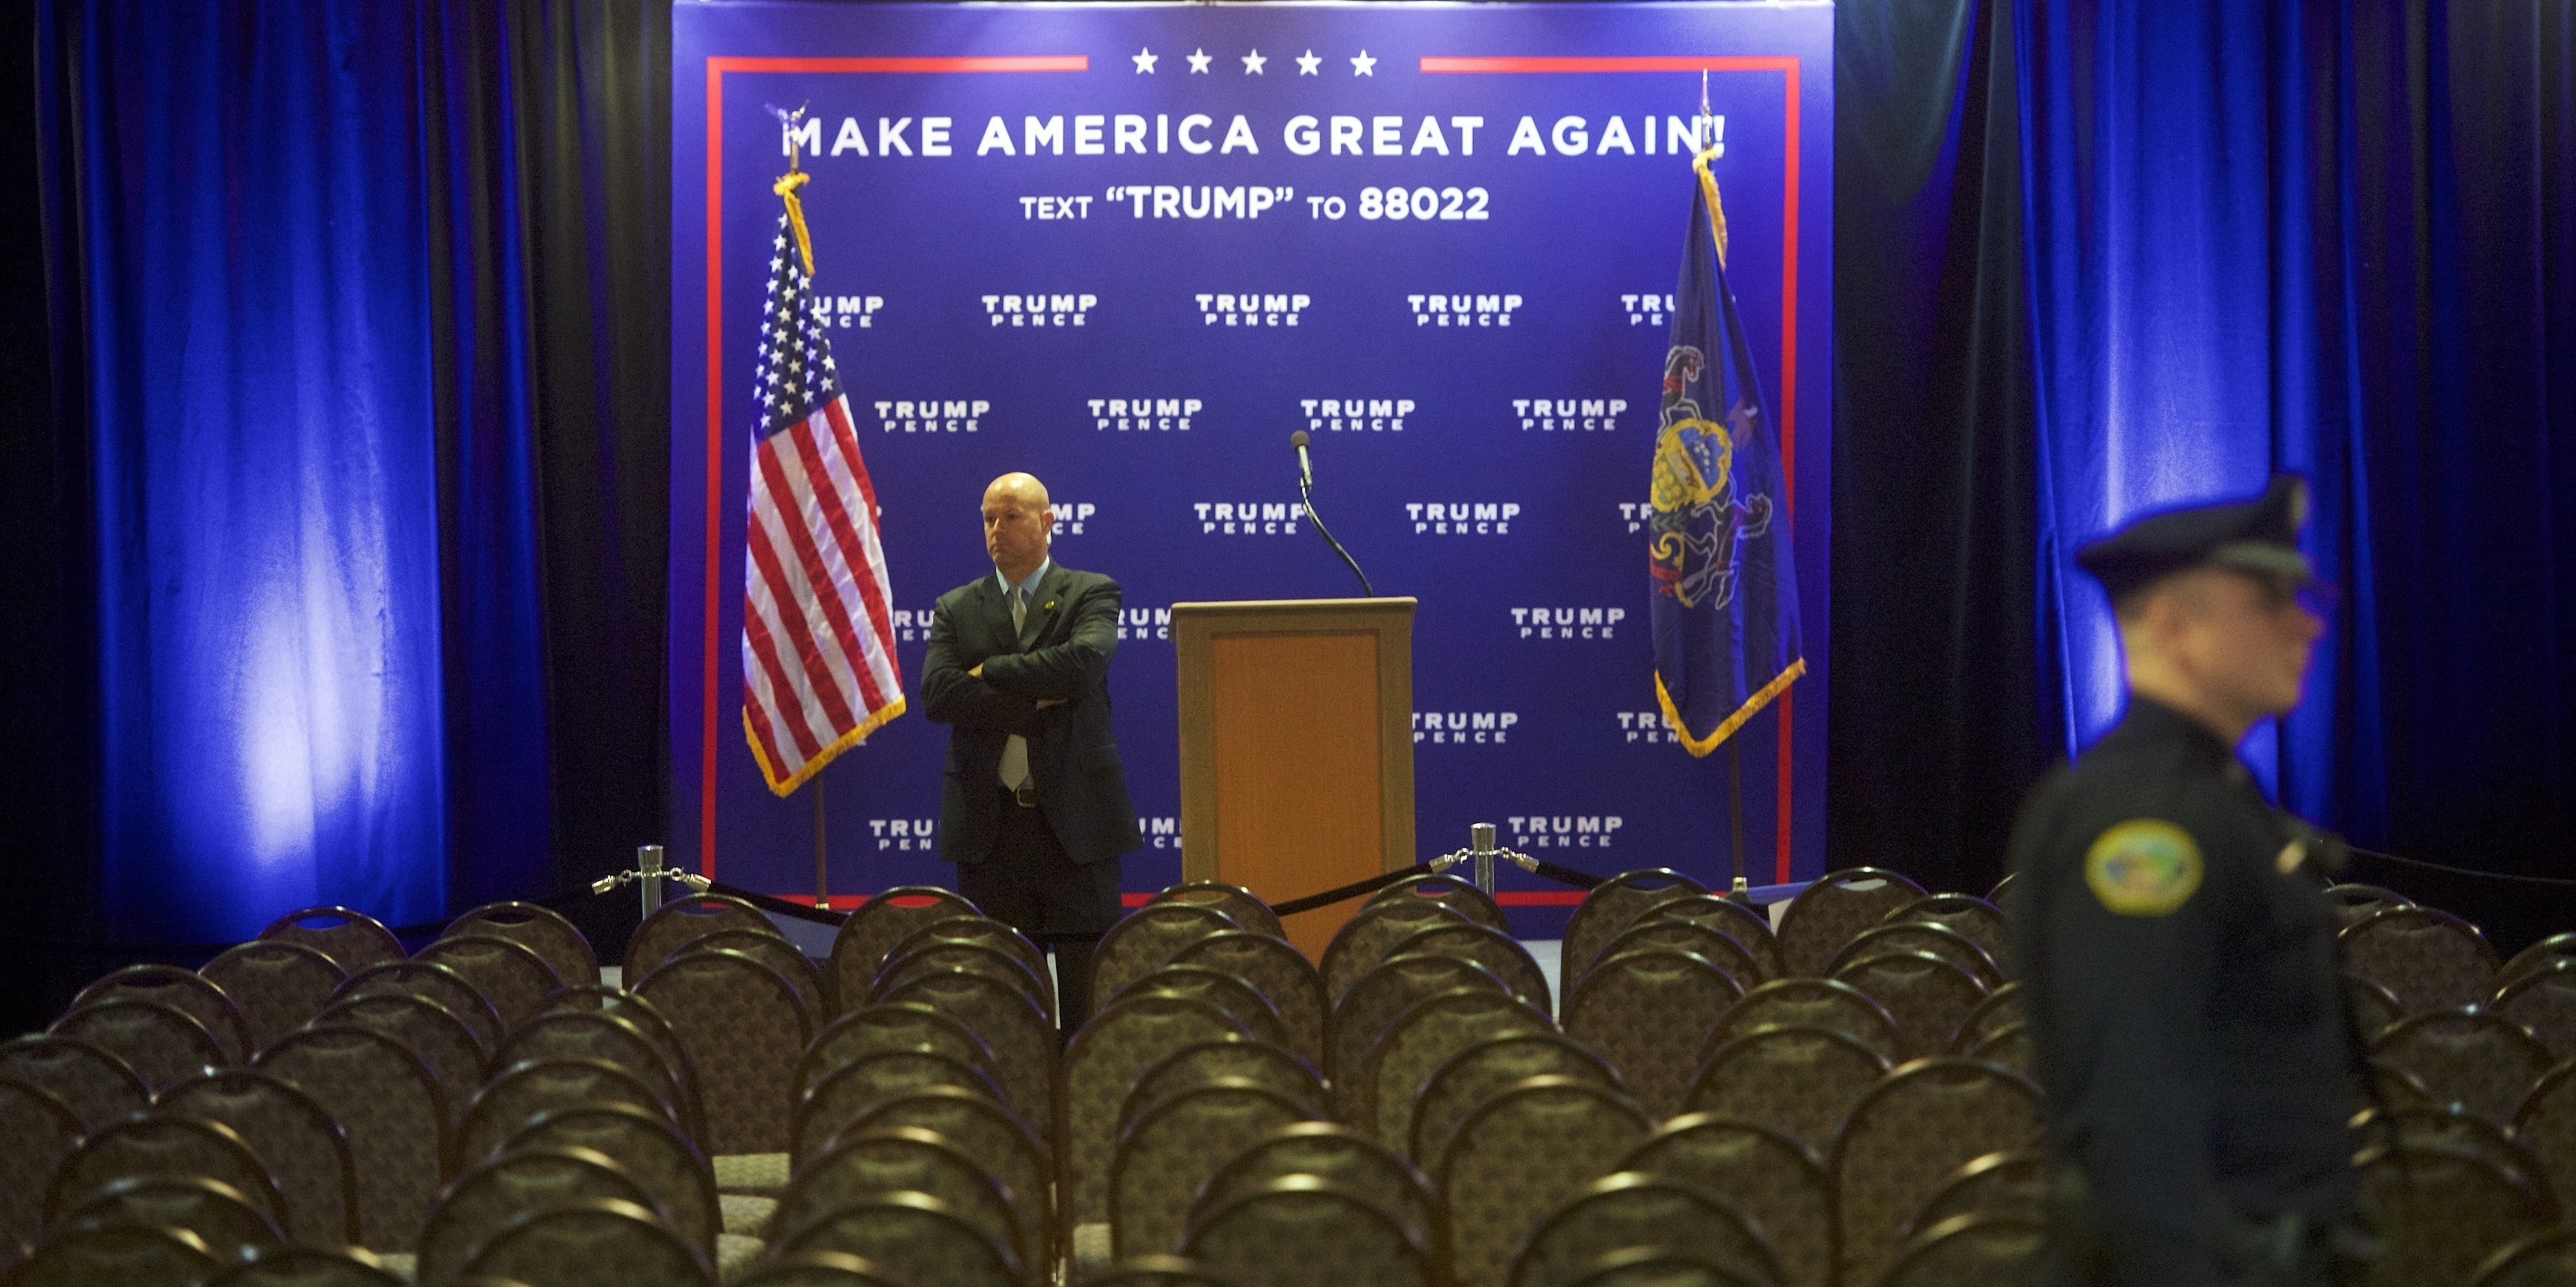 A secret service agent monitors activity after Republican Presidential nominee Donald J. Trump held an event at the Eisenhower Hotel and Conference Center October 22, 2016 in Gettysburg, Pennsylvania.  Trump delivered a policy speech announcing his plans for his first 100 days in office.